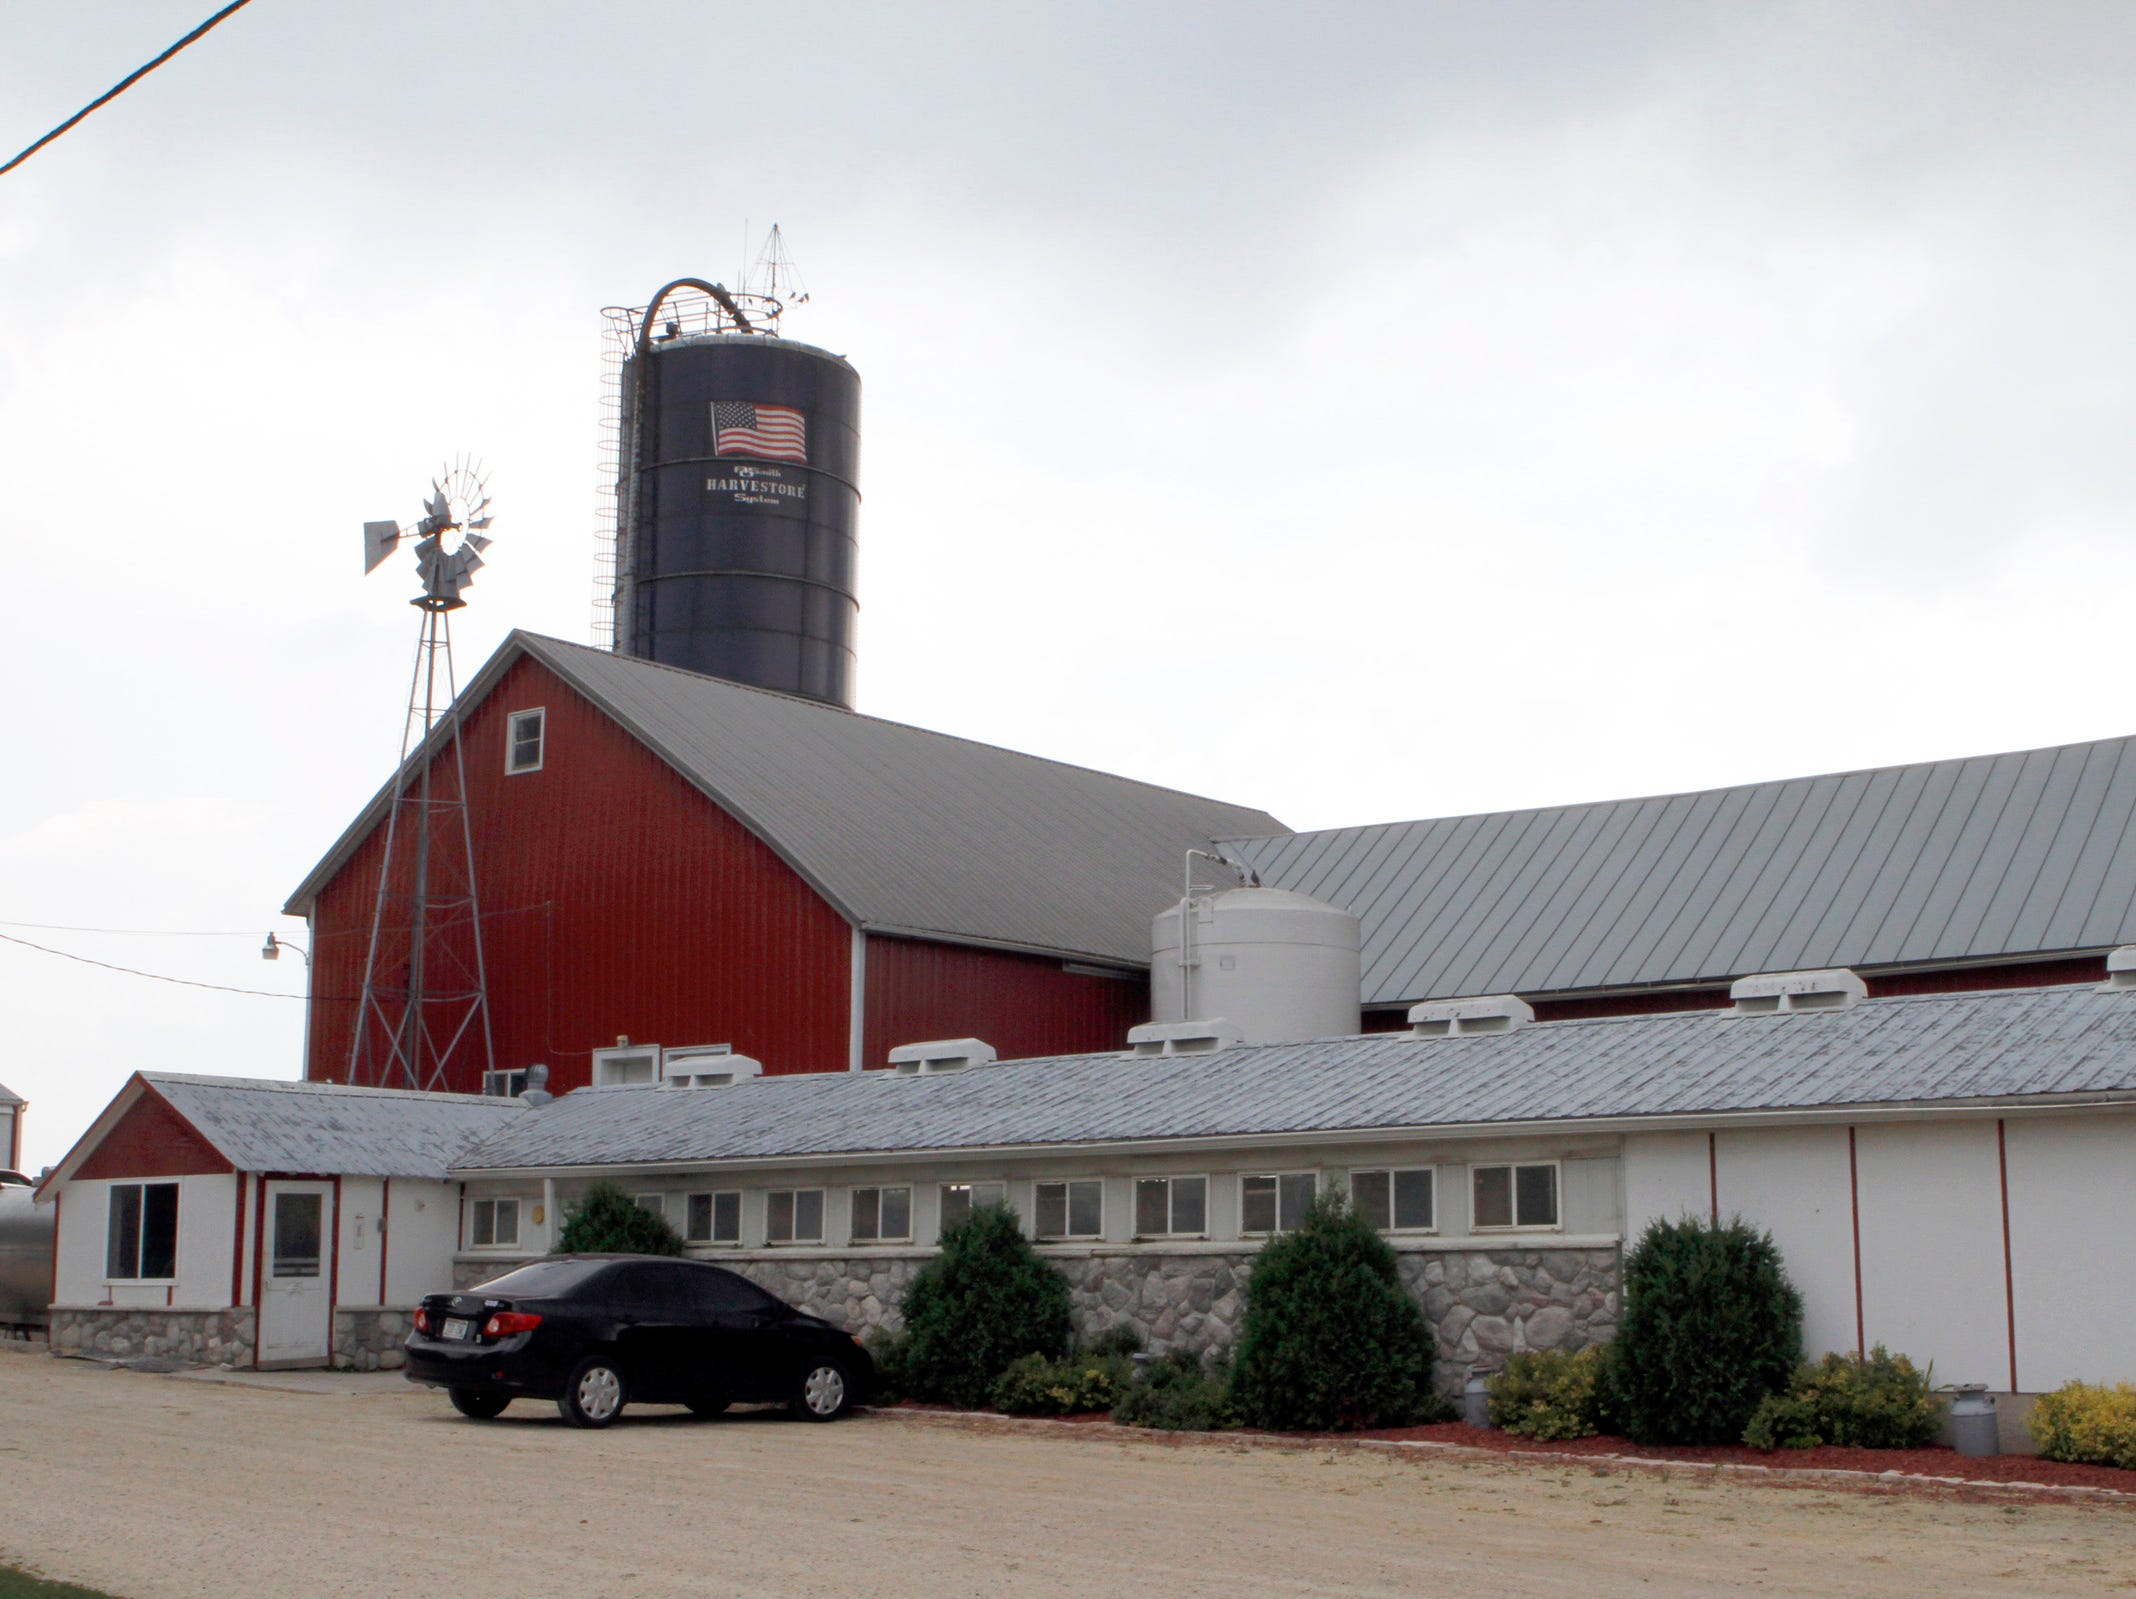 Roden Echo Valley farm is the home for Roden Barnyard Adventures, LLC in West Bend.